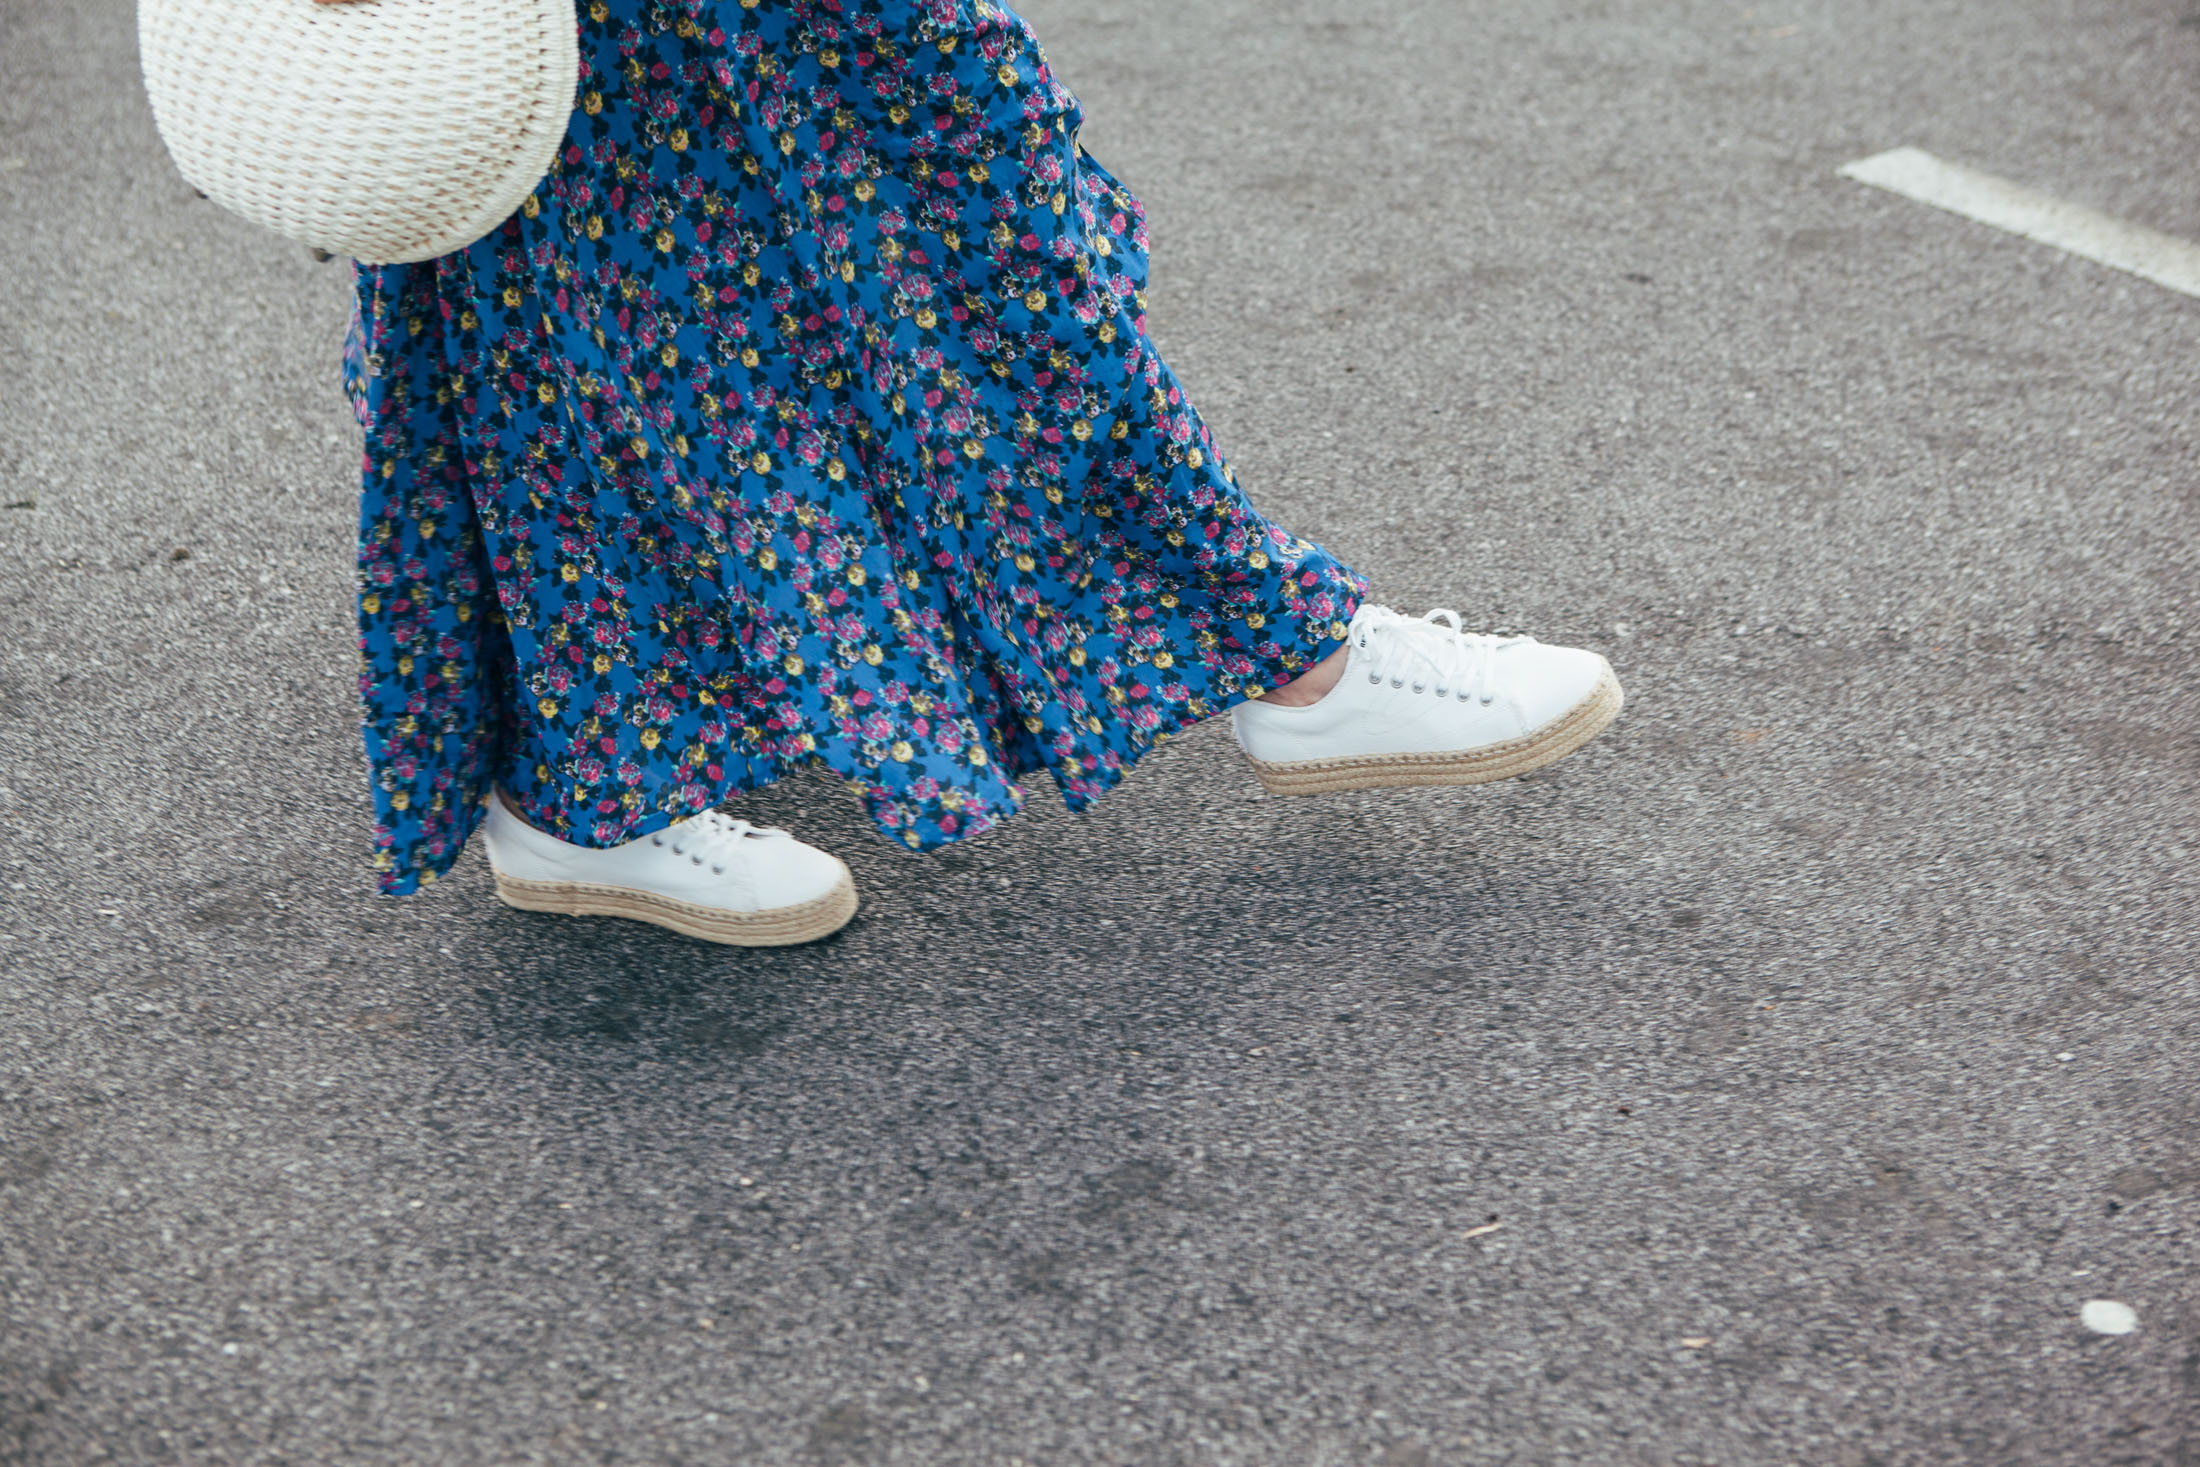 espadrille-sneakers-for-spring-summer